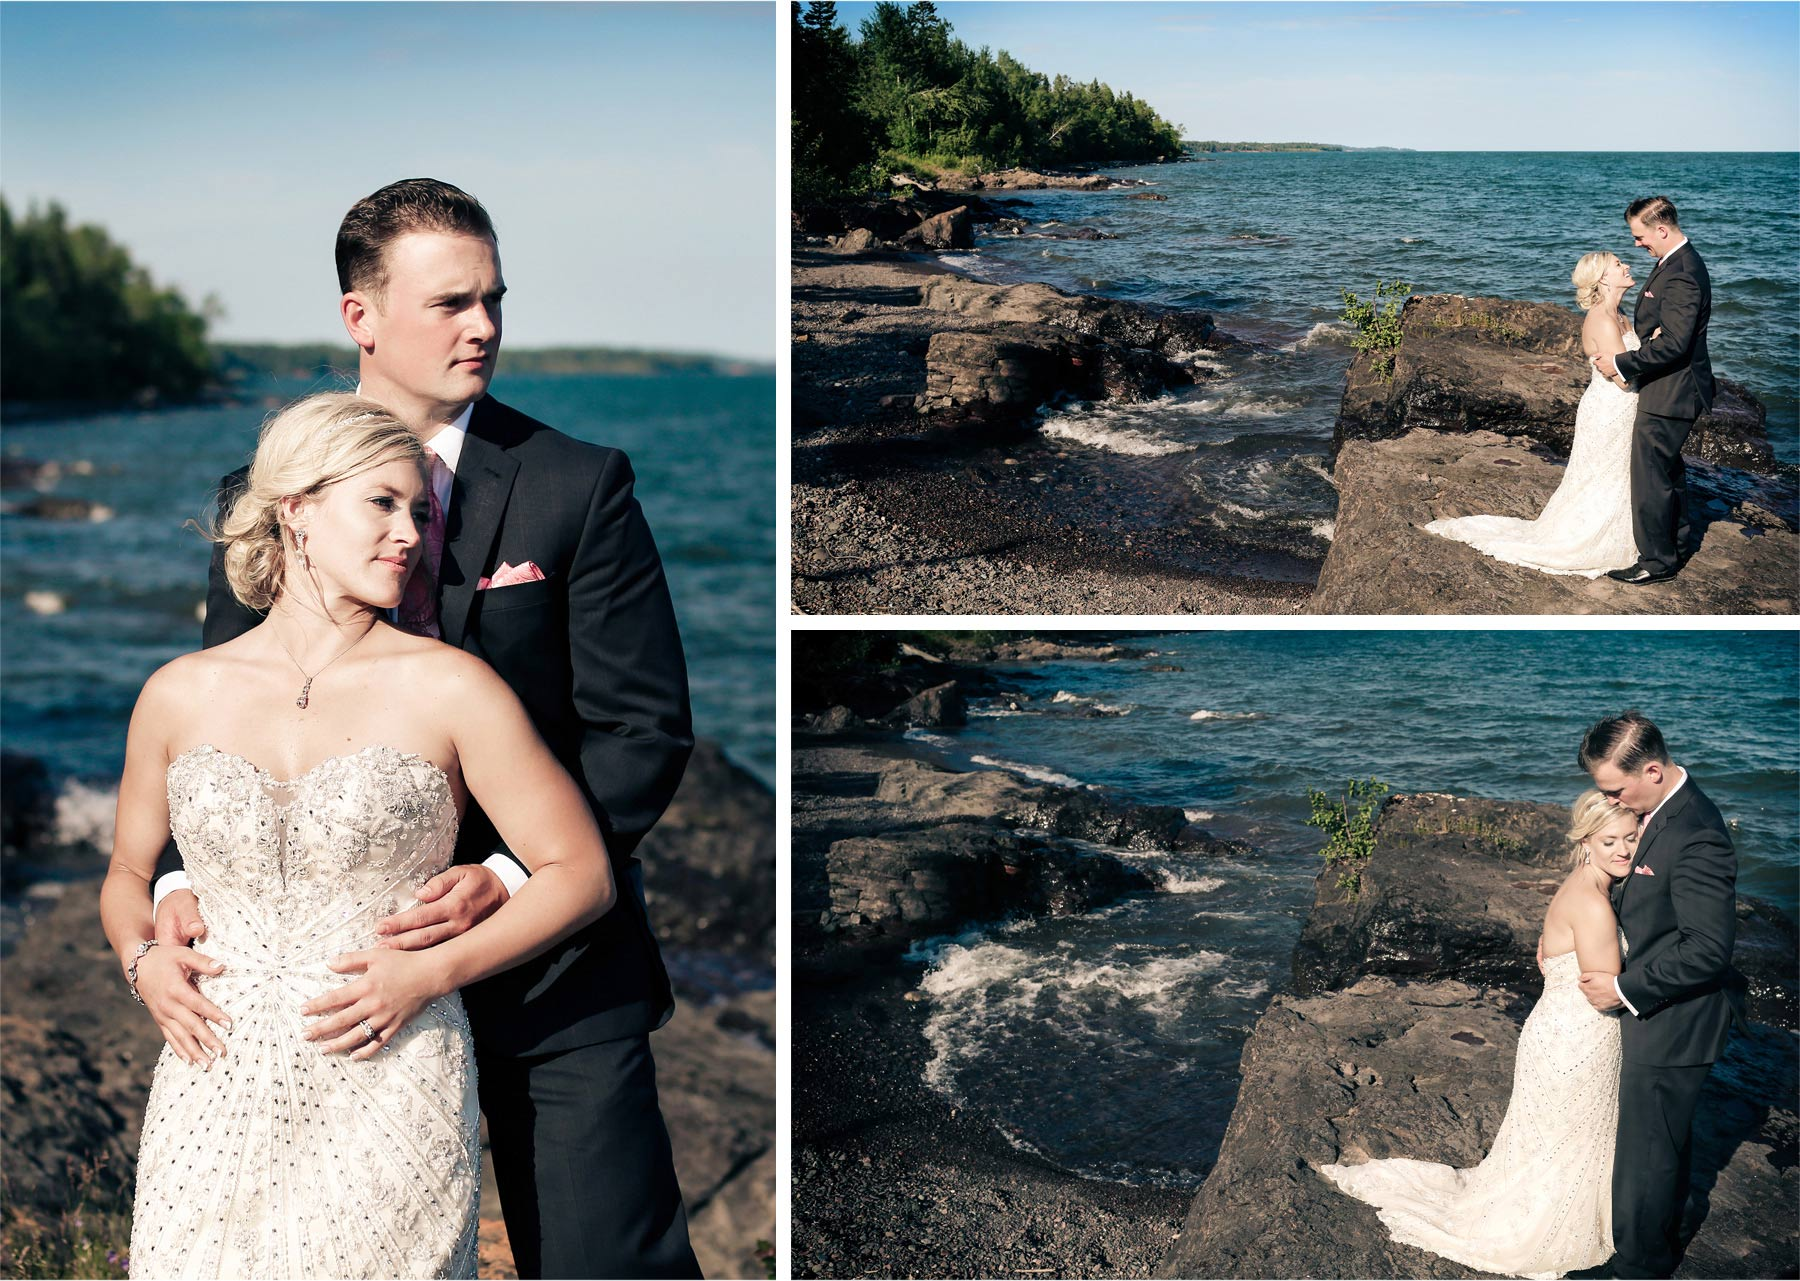 17-Duluth-Minnesota-Wedding-Photographer-by-Andrew-Vick-Photography-Summer-Groom-Bride-Lake-Superior-Embrace-Laughter-Vintage-Lindsey-and-Adam.jpg